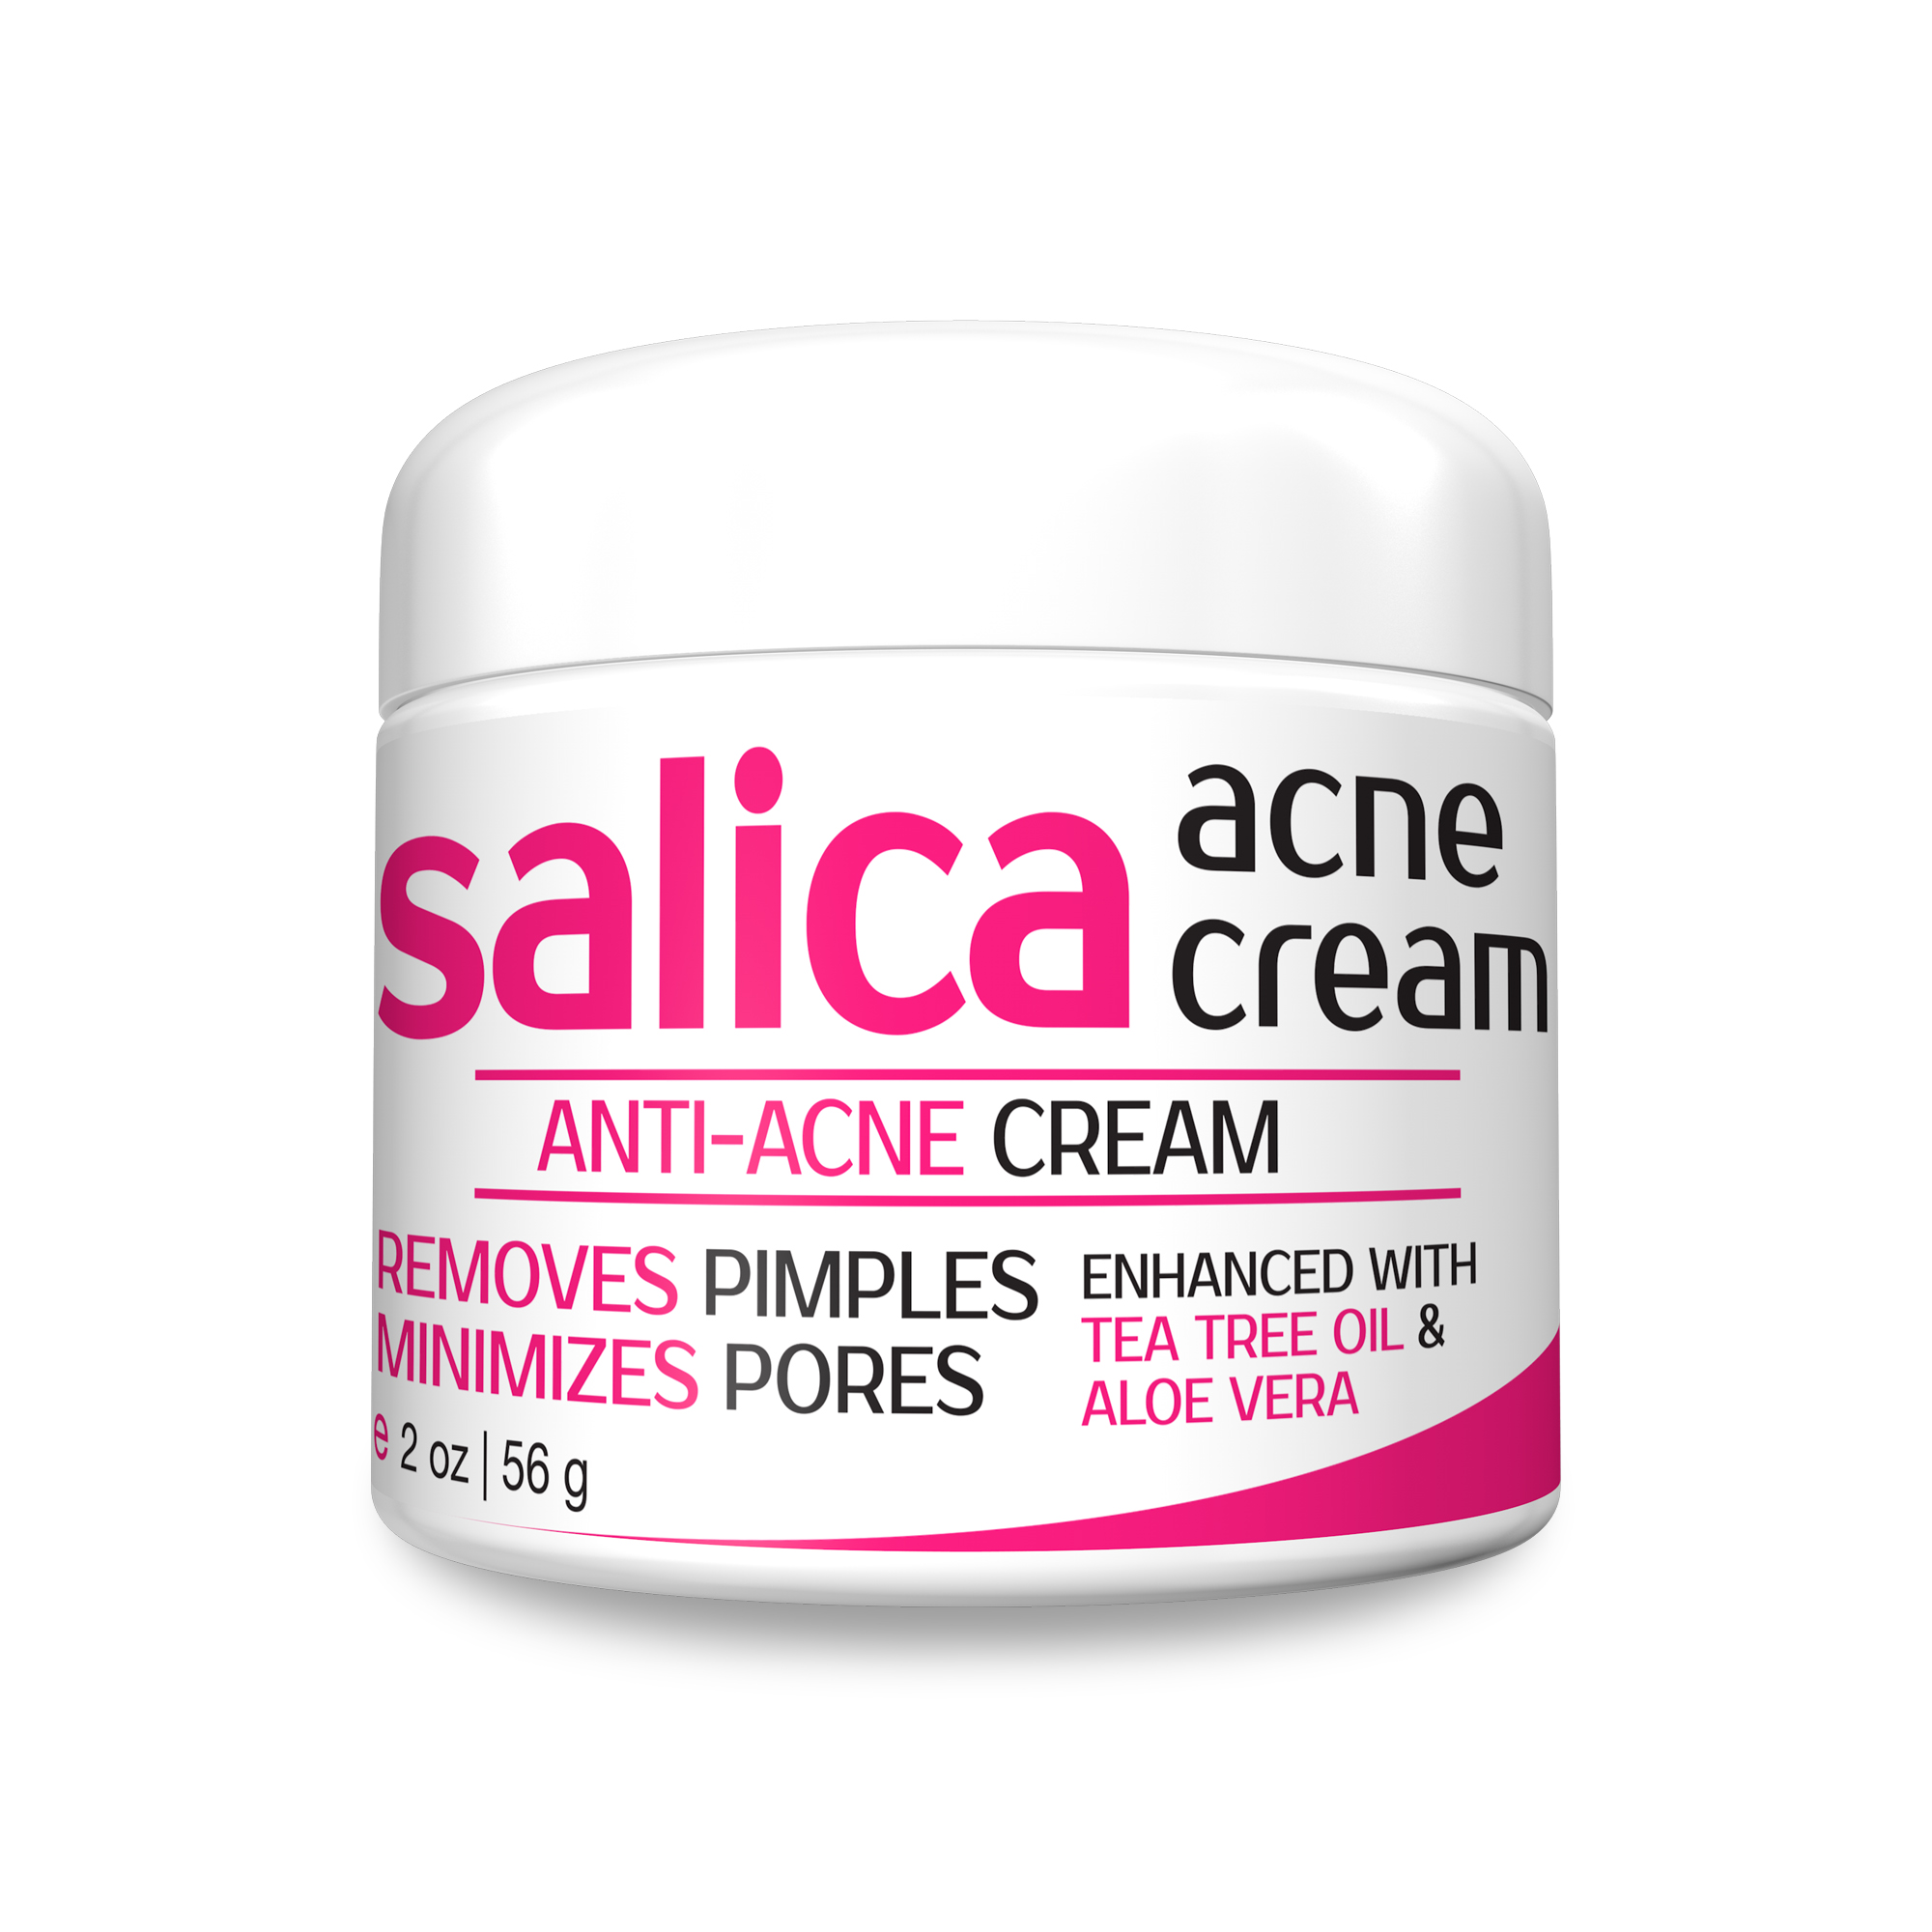 Salica Acne Treatment Cream - Topical Anti Acne Medication with Salicylic Acid and Tea Tree Oil - Get Rid of Acne Scars, Pimples, Cystic Acne and Blackheads - Same Formula NEW PACKAGING